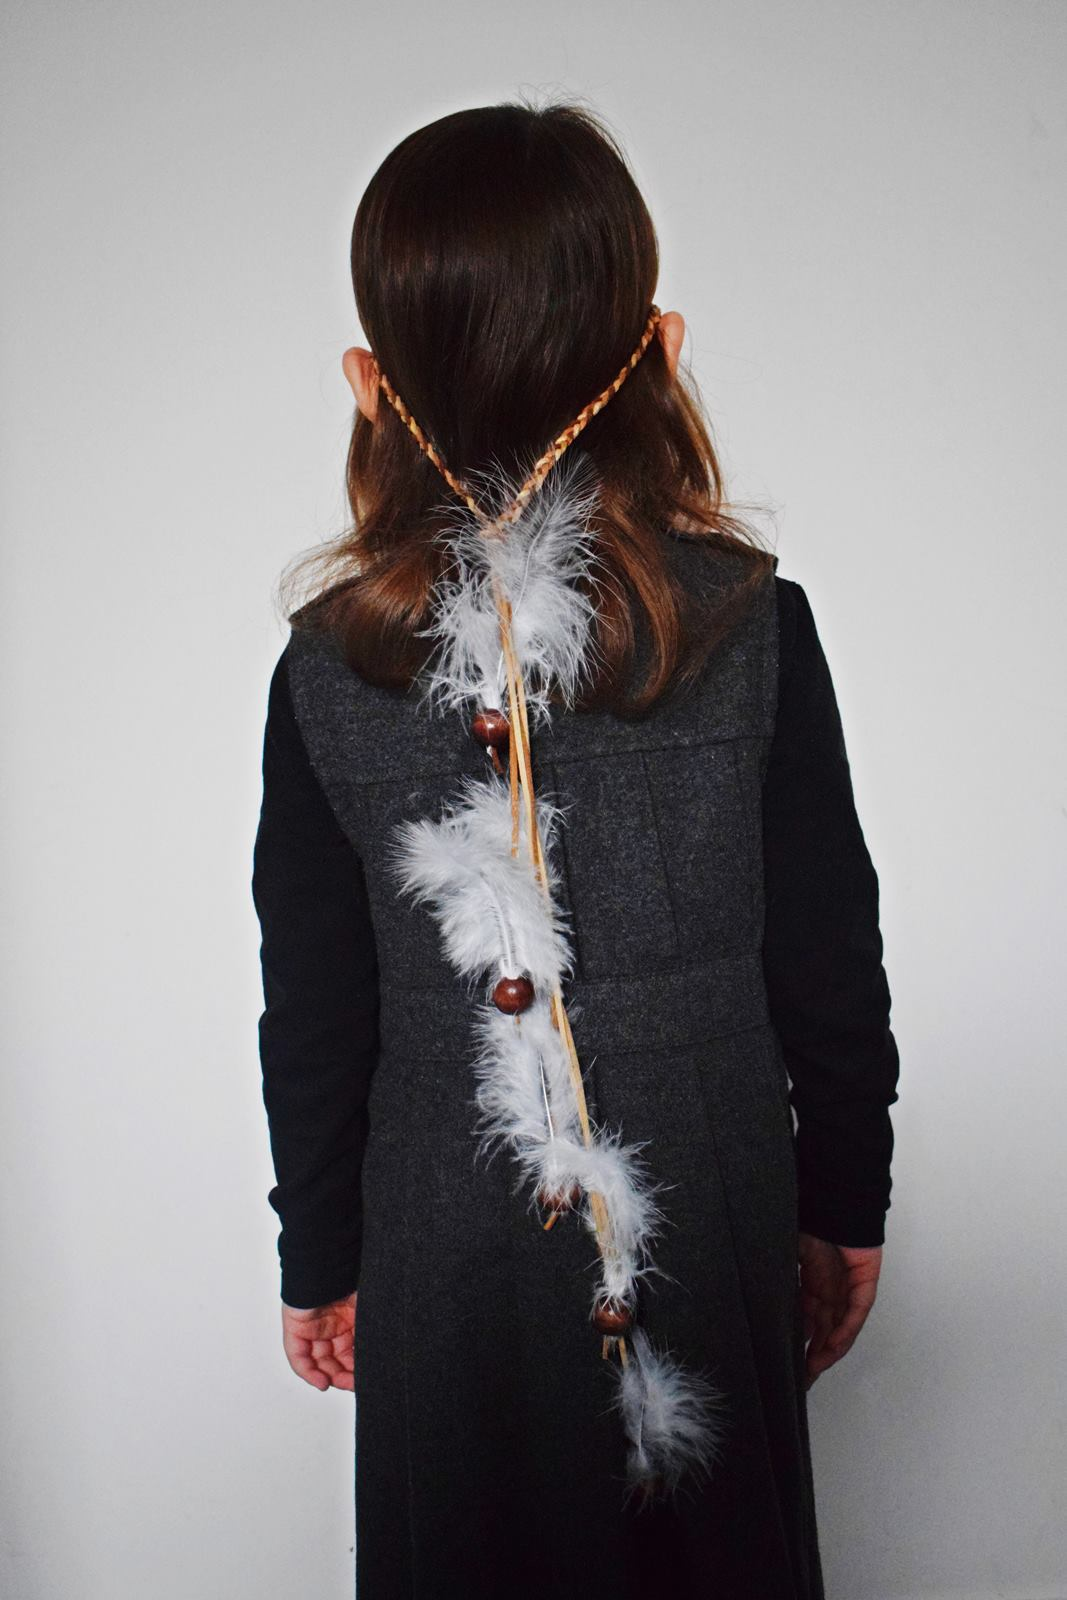 Diy couronne de plumes et de perles our little family le blog 11 bis